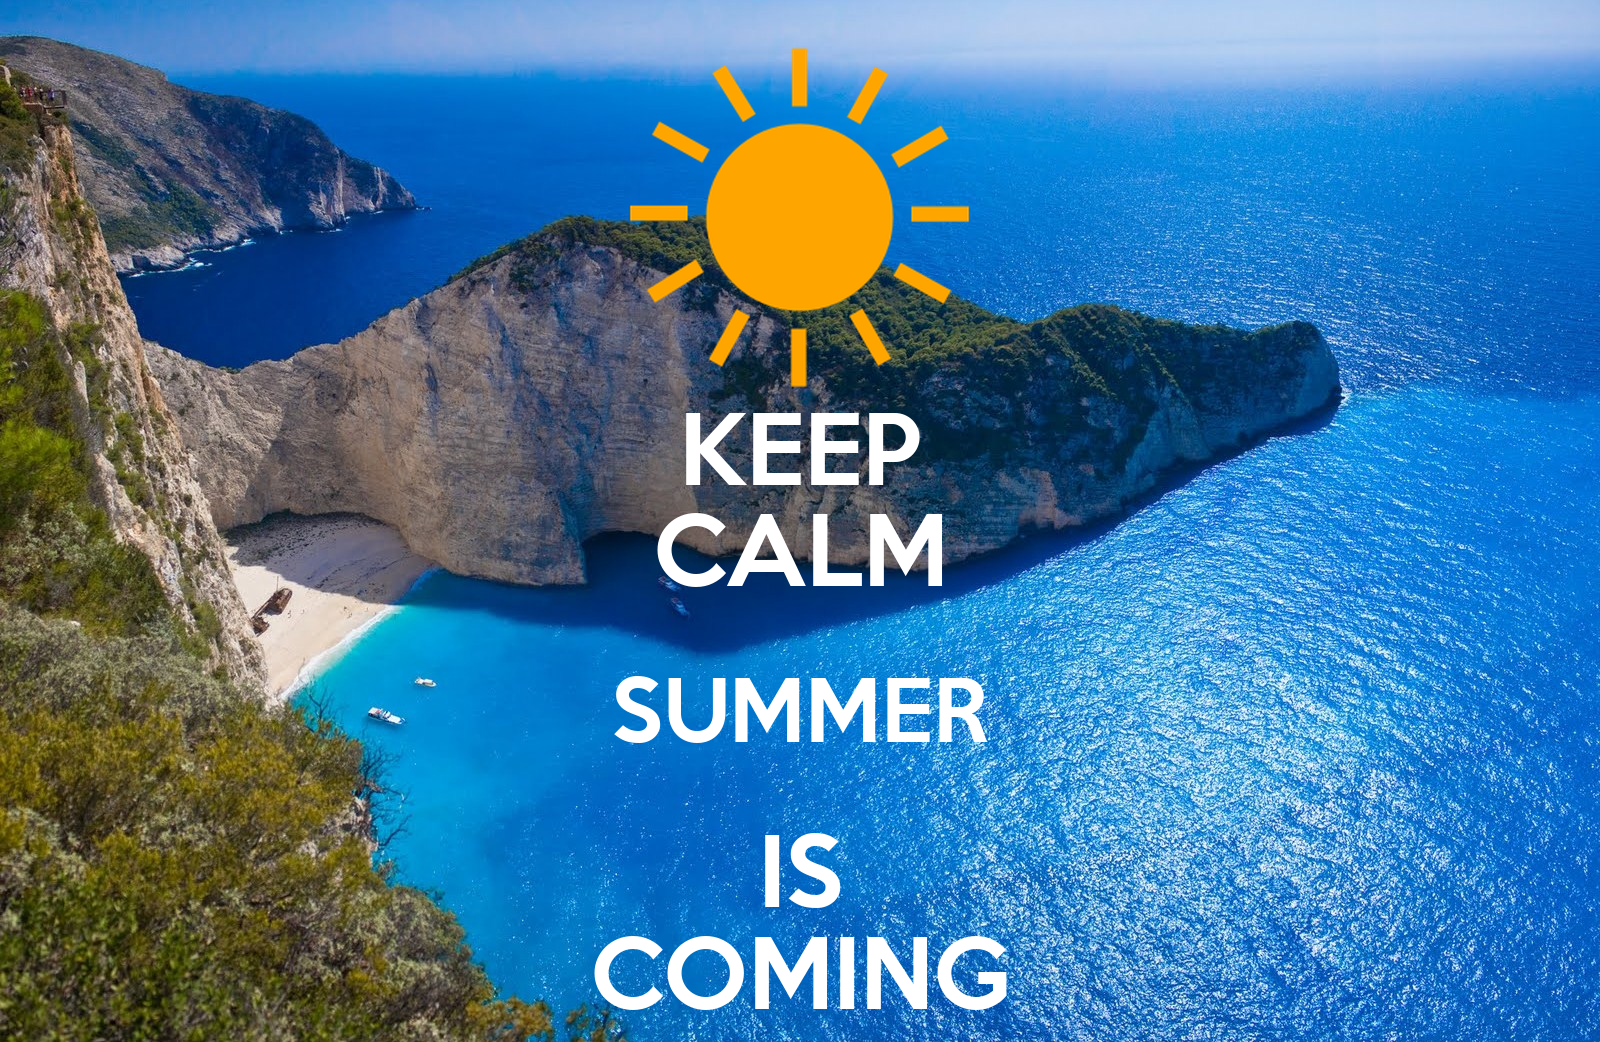 Captivating KEEP CALM SUMMER IS COMING   KEEP CALM AND CARRY ON Image Generator